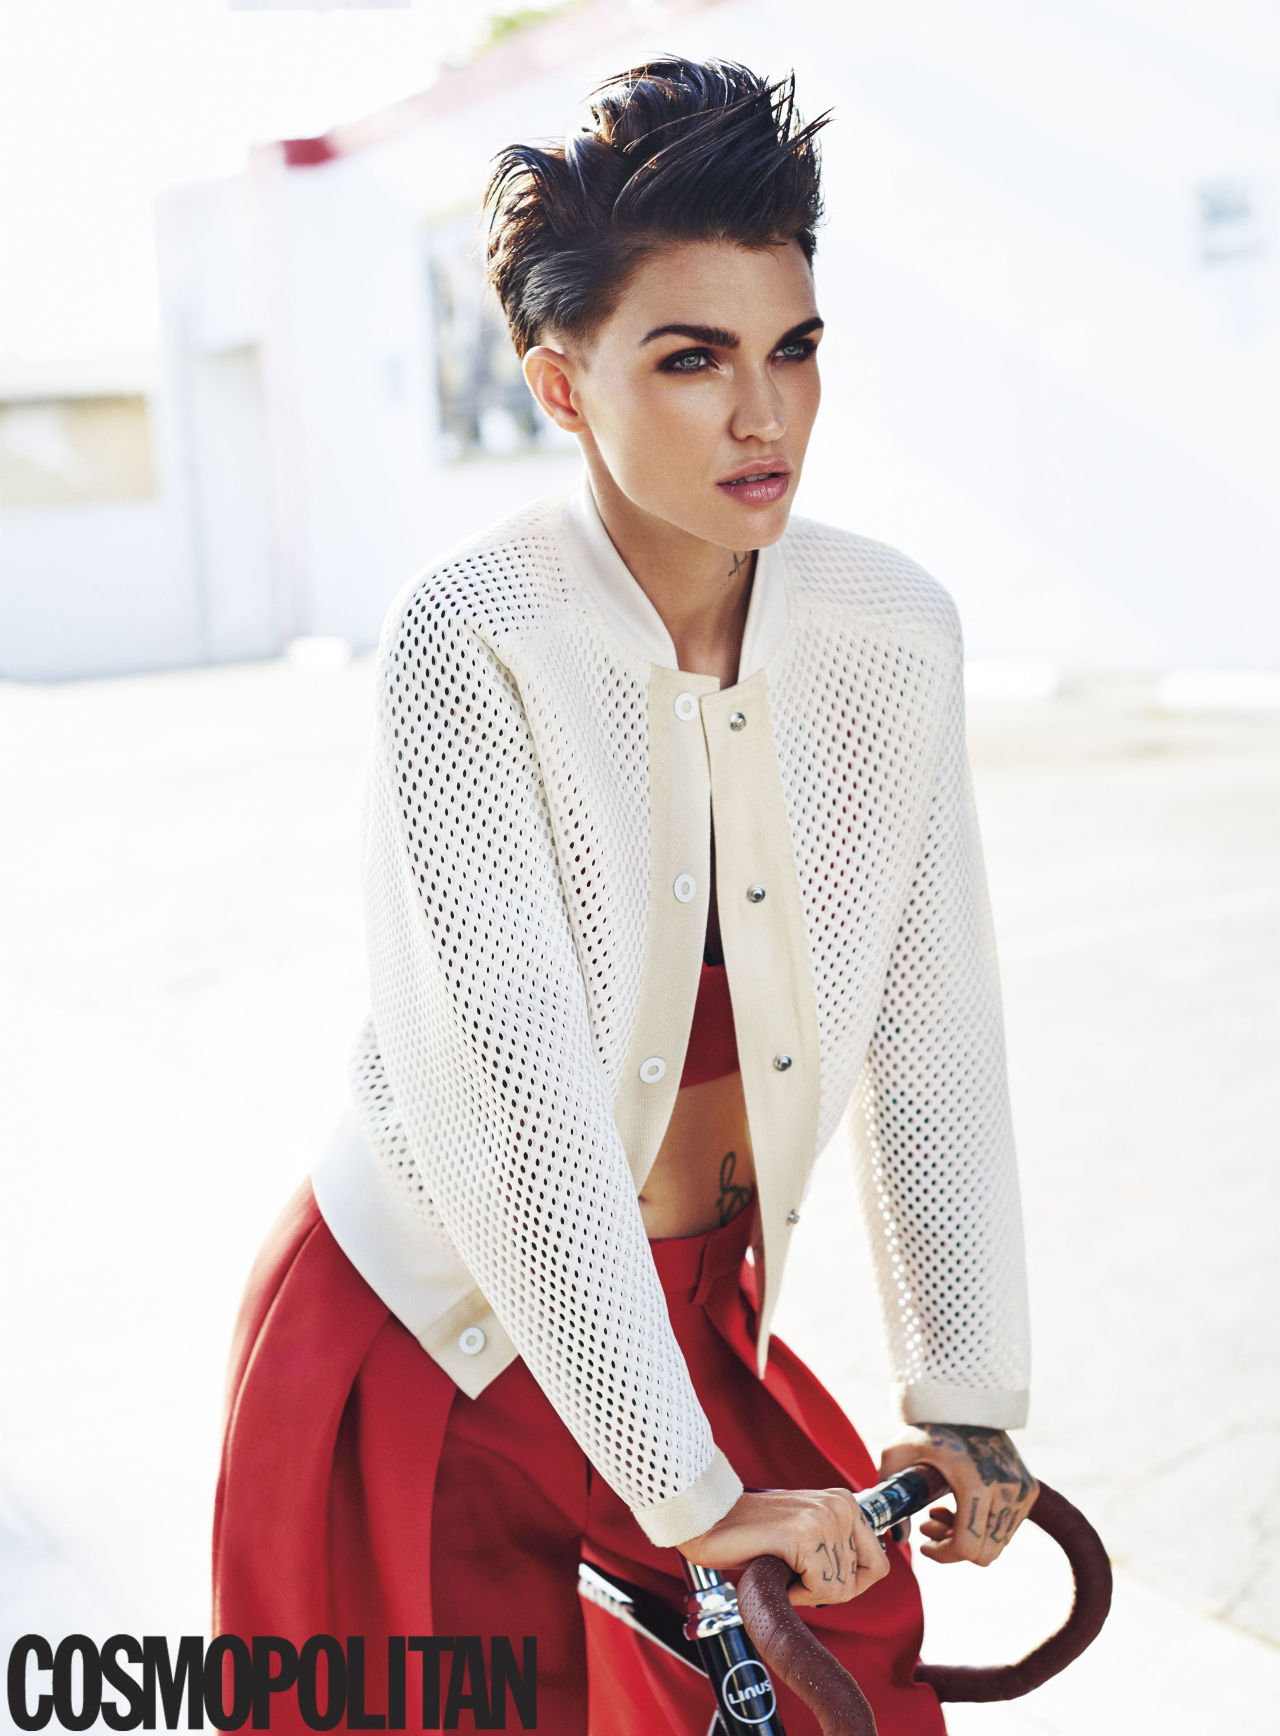 Ruby rose image gallery